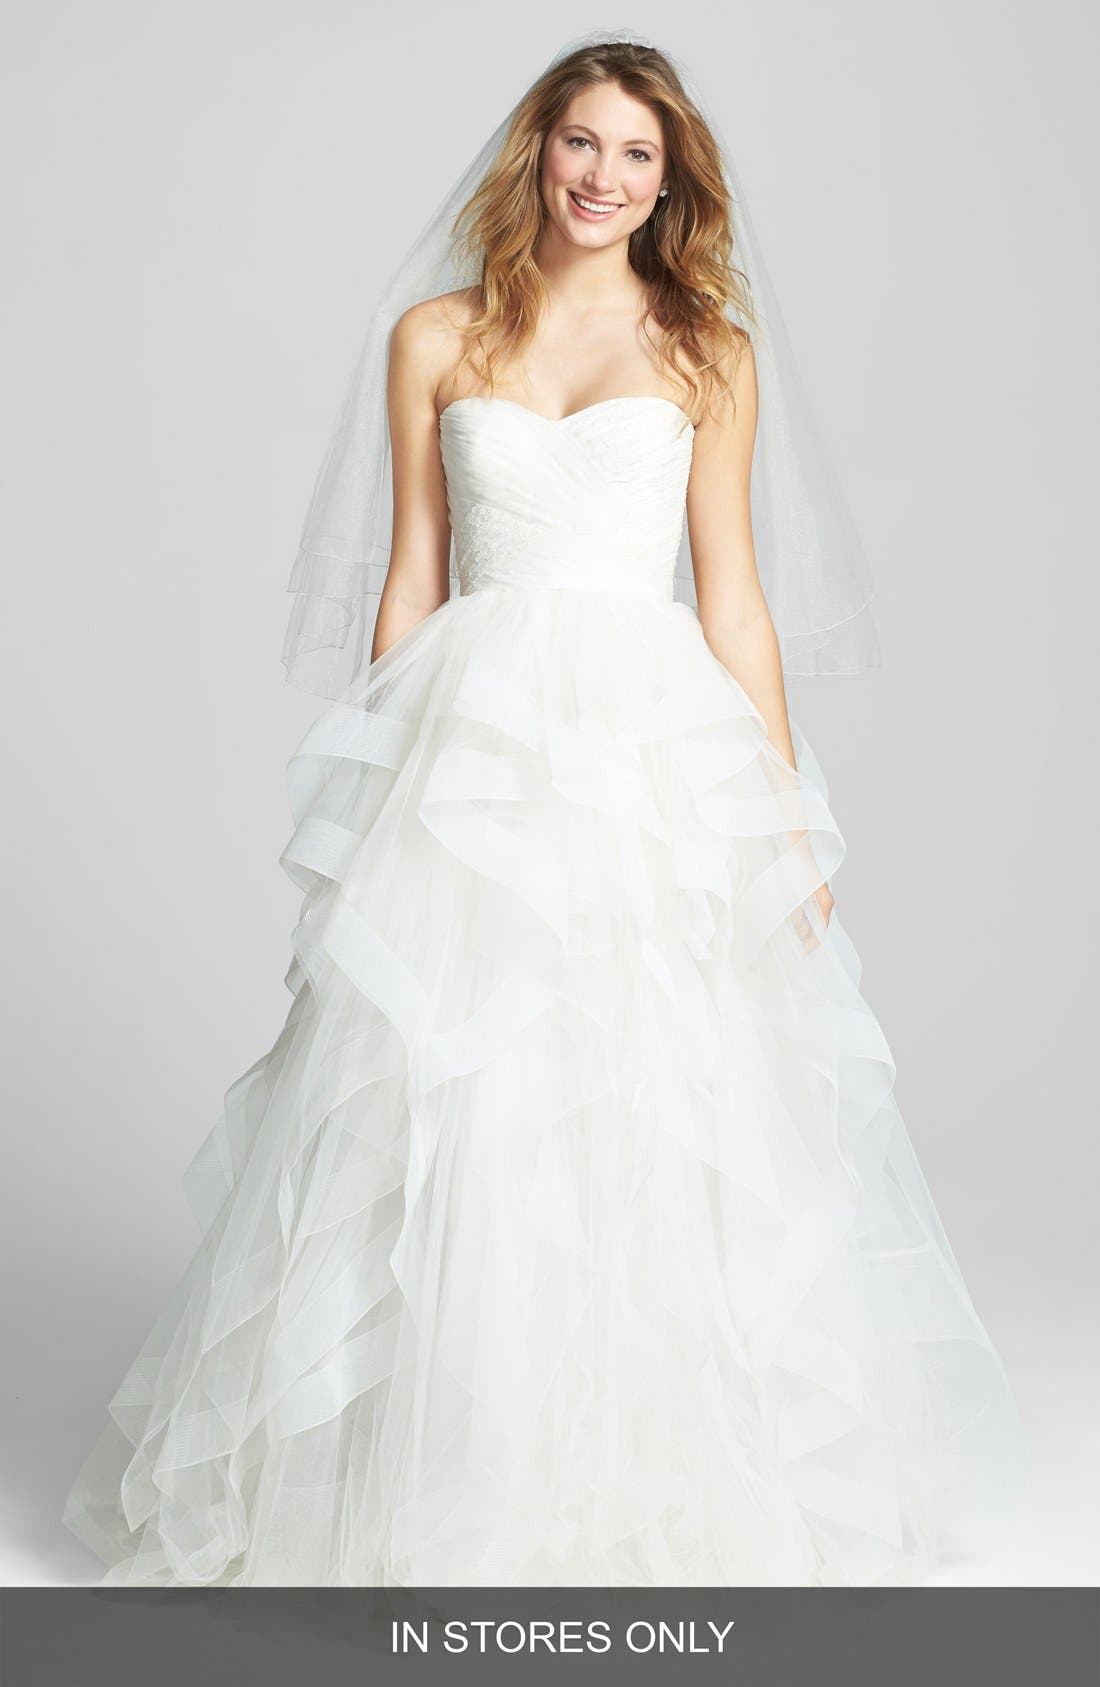 Alternate Image 1 Selected - Reem Acra 'Eliza' Lace Detail Ruffled Tulle Wedding Dress (In Stores Only)